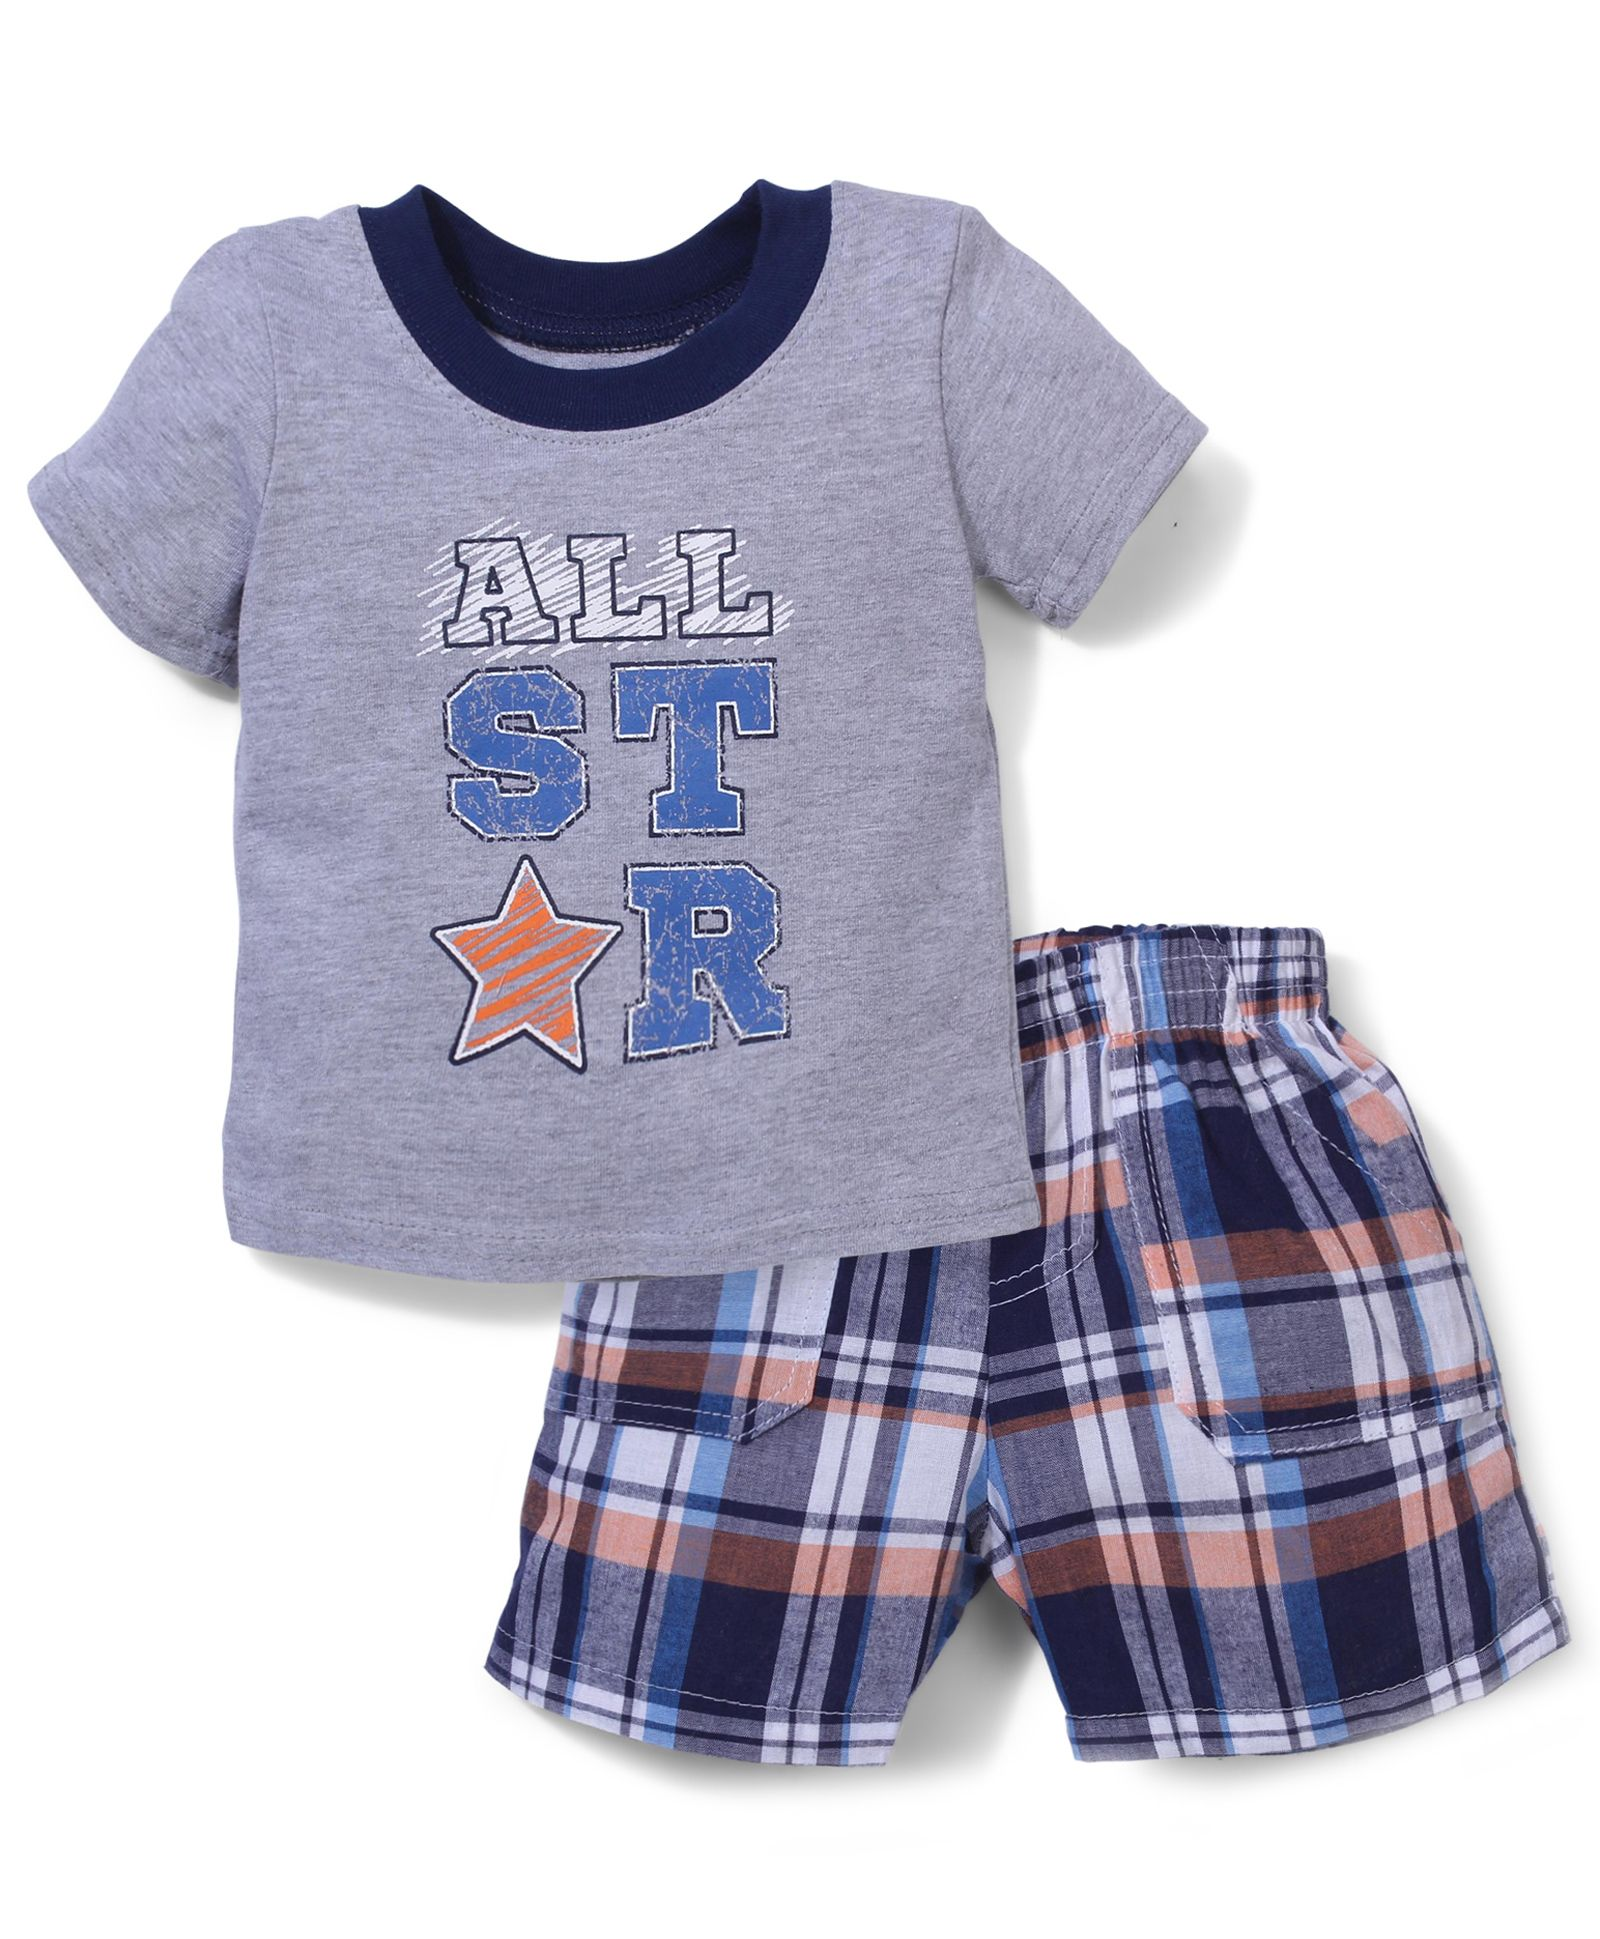 Buy Vitamins Baby All Star Print TShirt & Shorts Multicolor for Boys